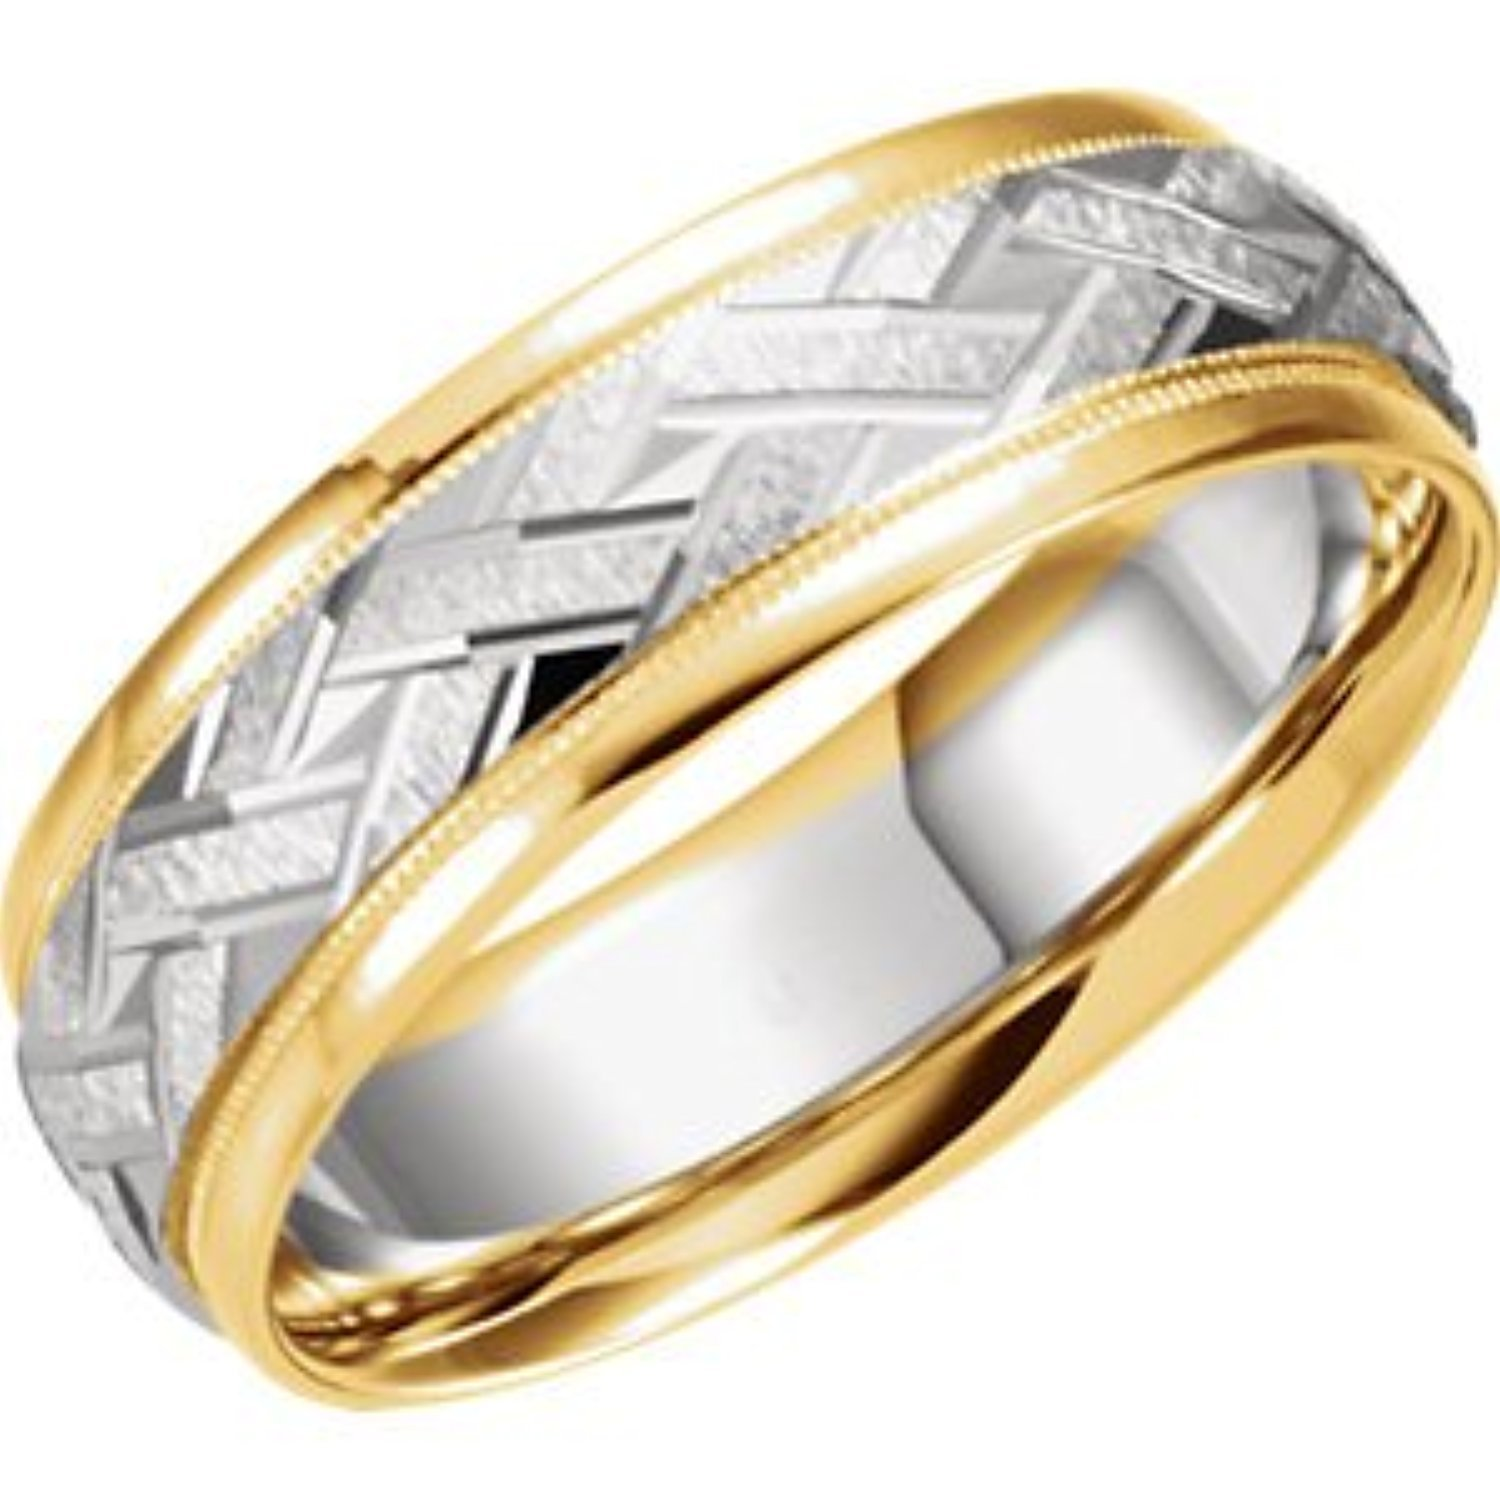 7mm High Polish Faceted Diamond Cut Comfort Fit Band Ring 14K Yellow Gold